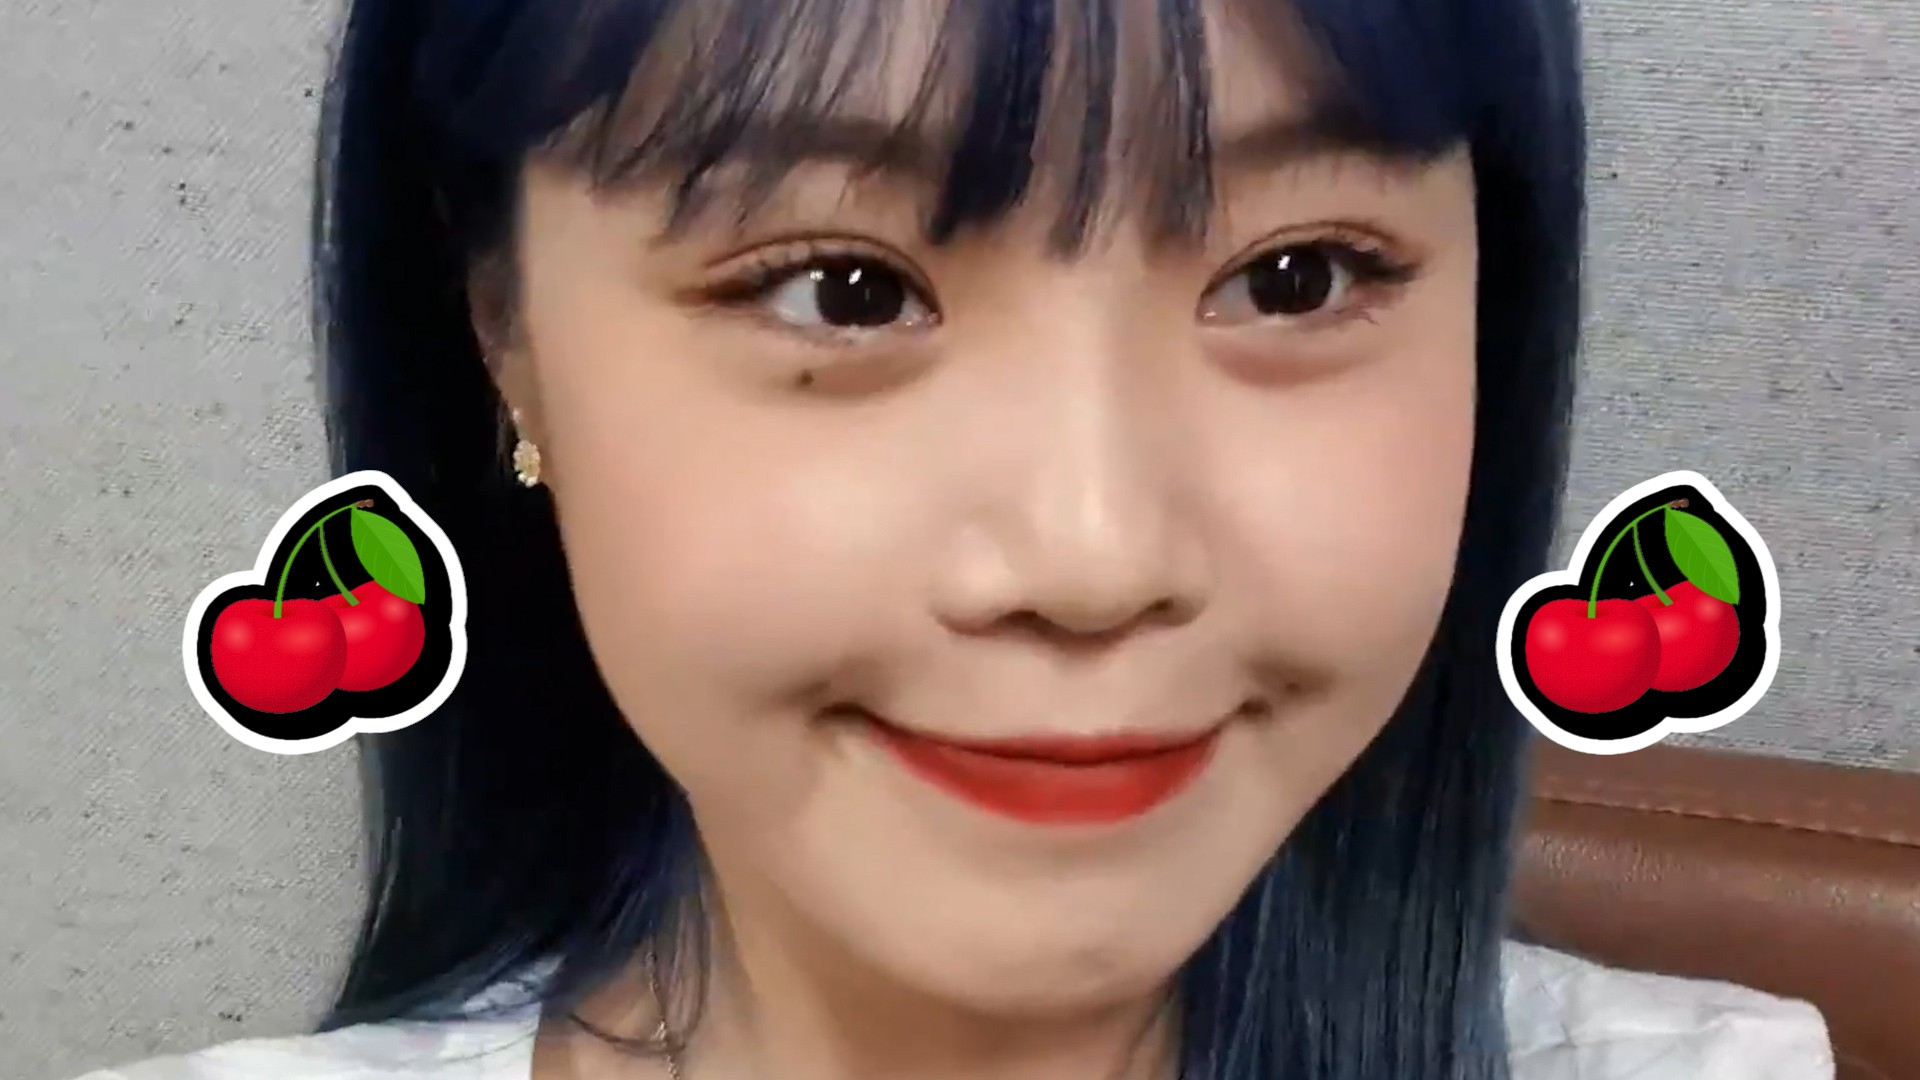 [(G)I-DLE] 묻지도 따지지도 말고 체!리!마!루!요🍒🍦 (SOOJIN talking about her hair color)